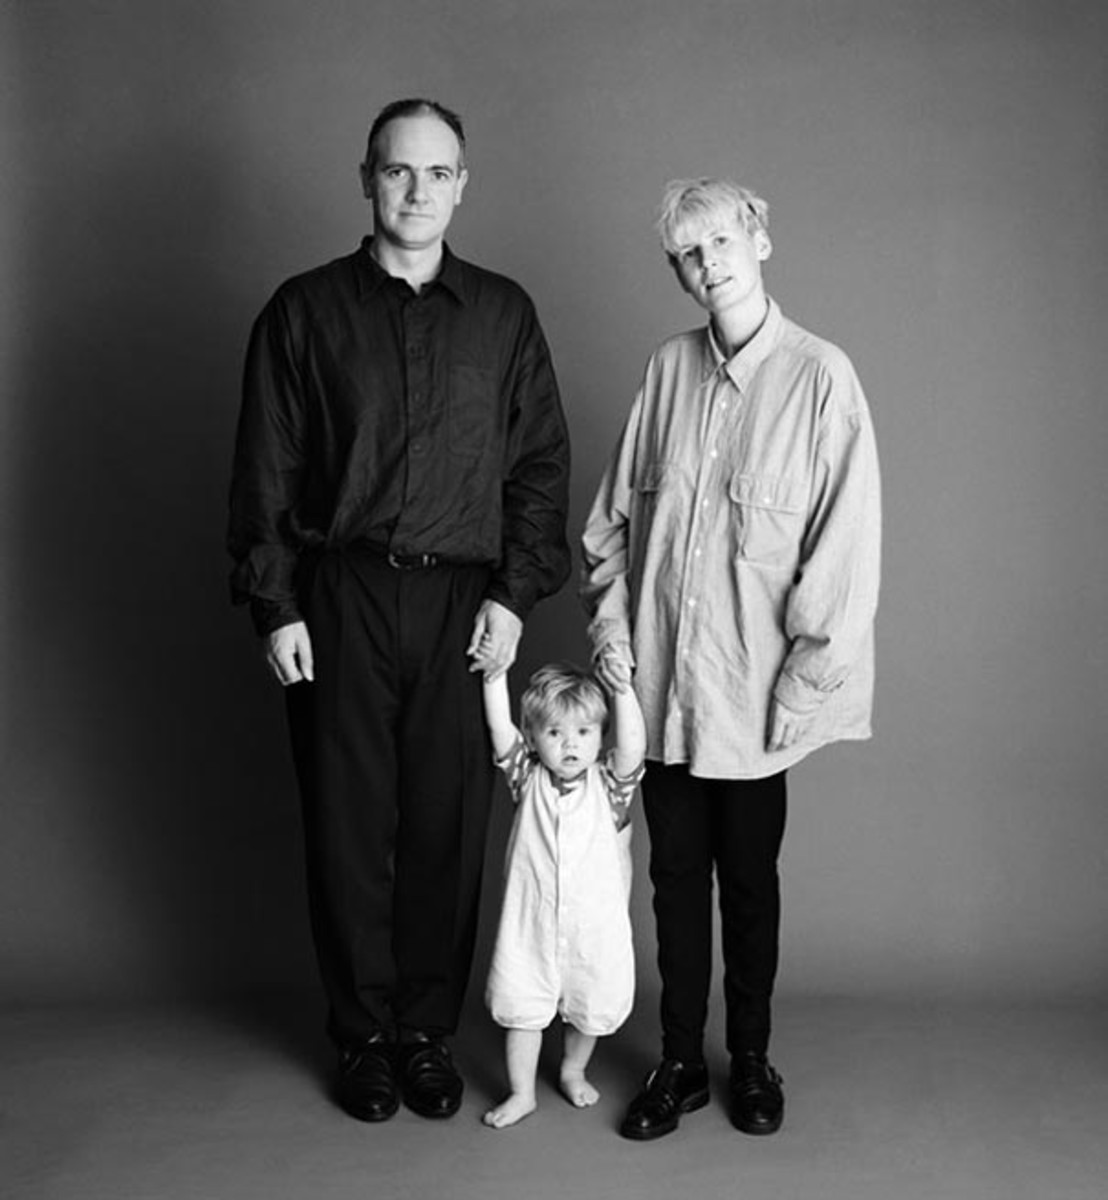 the-family-aging-photo-series-2